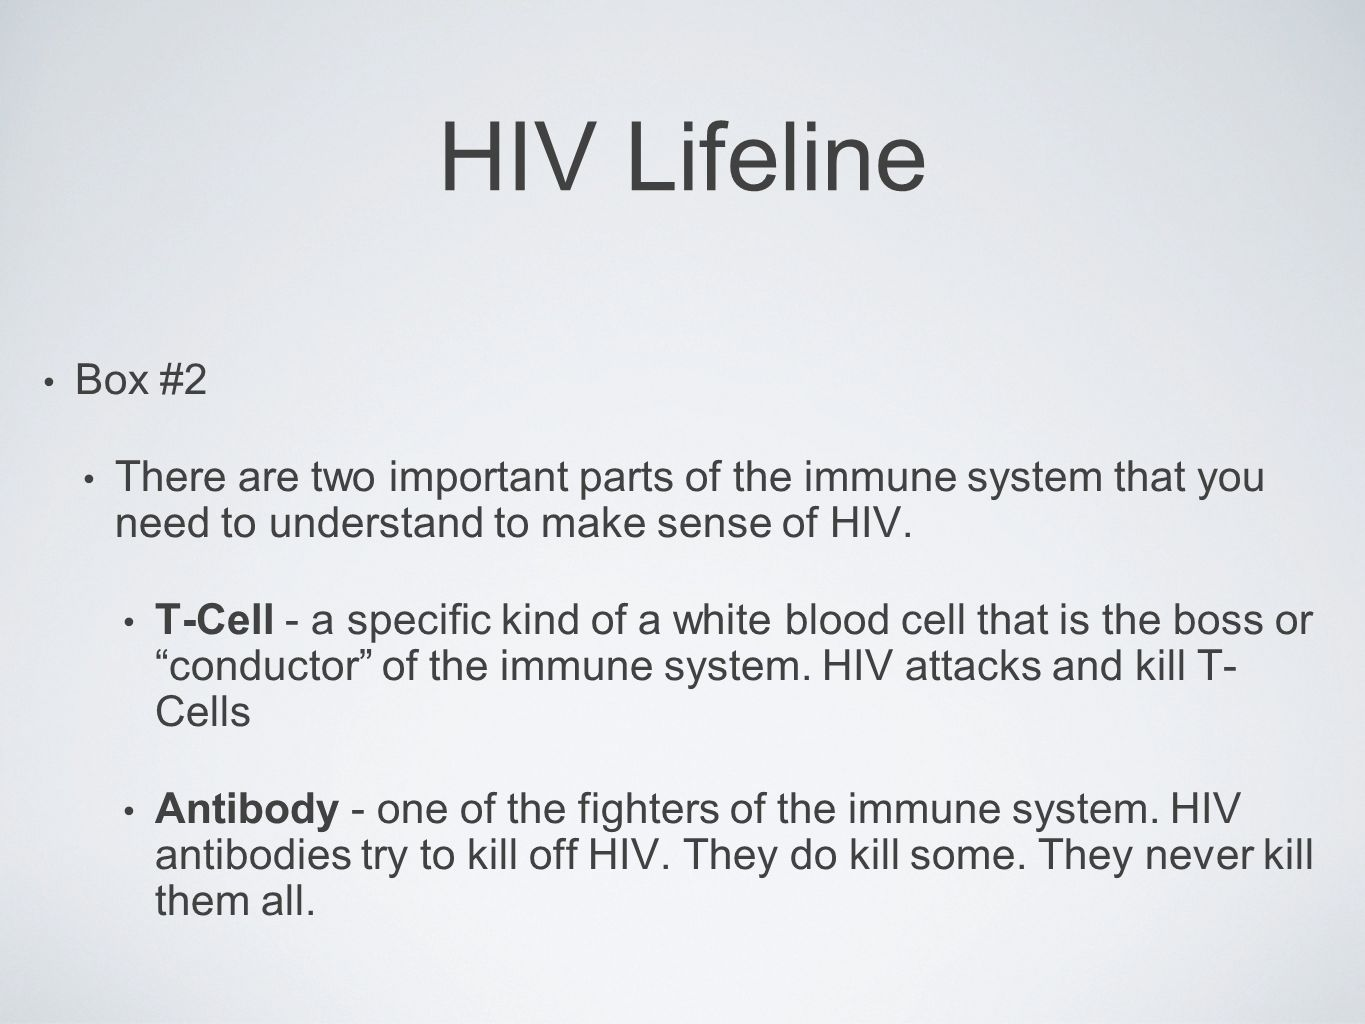 HIV Lifeline Box #2. There are two important parts of the immune system that you need to understand to make sense of HIV.